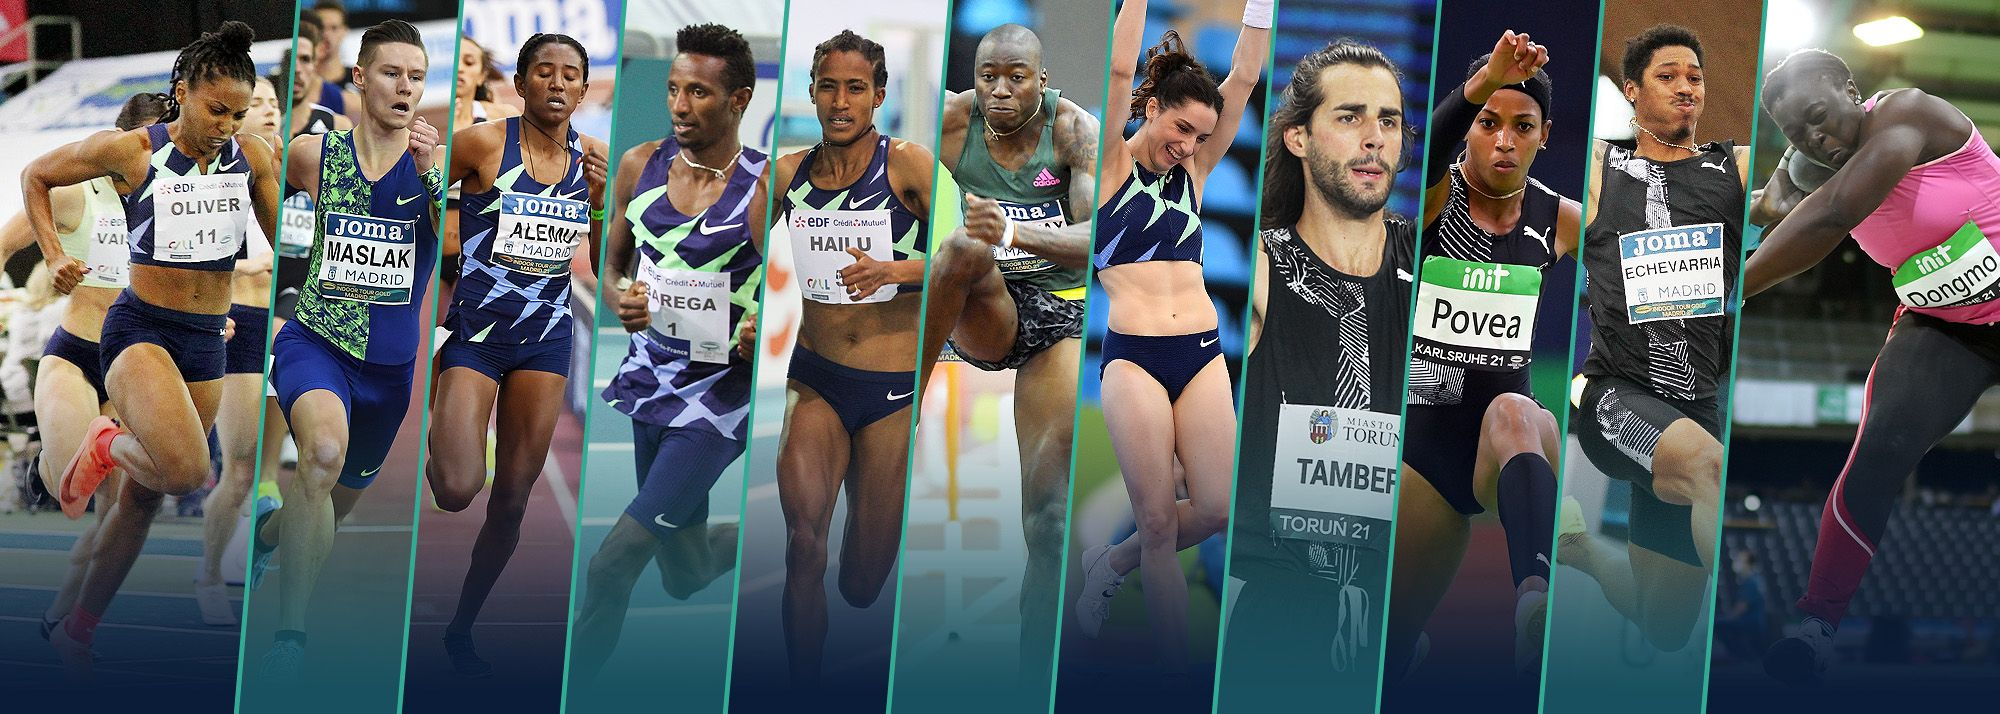 After the fifth and final Gold level meeting of the 2021 World Athletics Indoor Tour brought the series to a close for another year, 11 athletes have booked their place at the World Athletics Indoor Championships Belgrade 22.